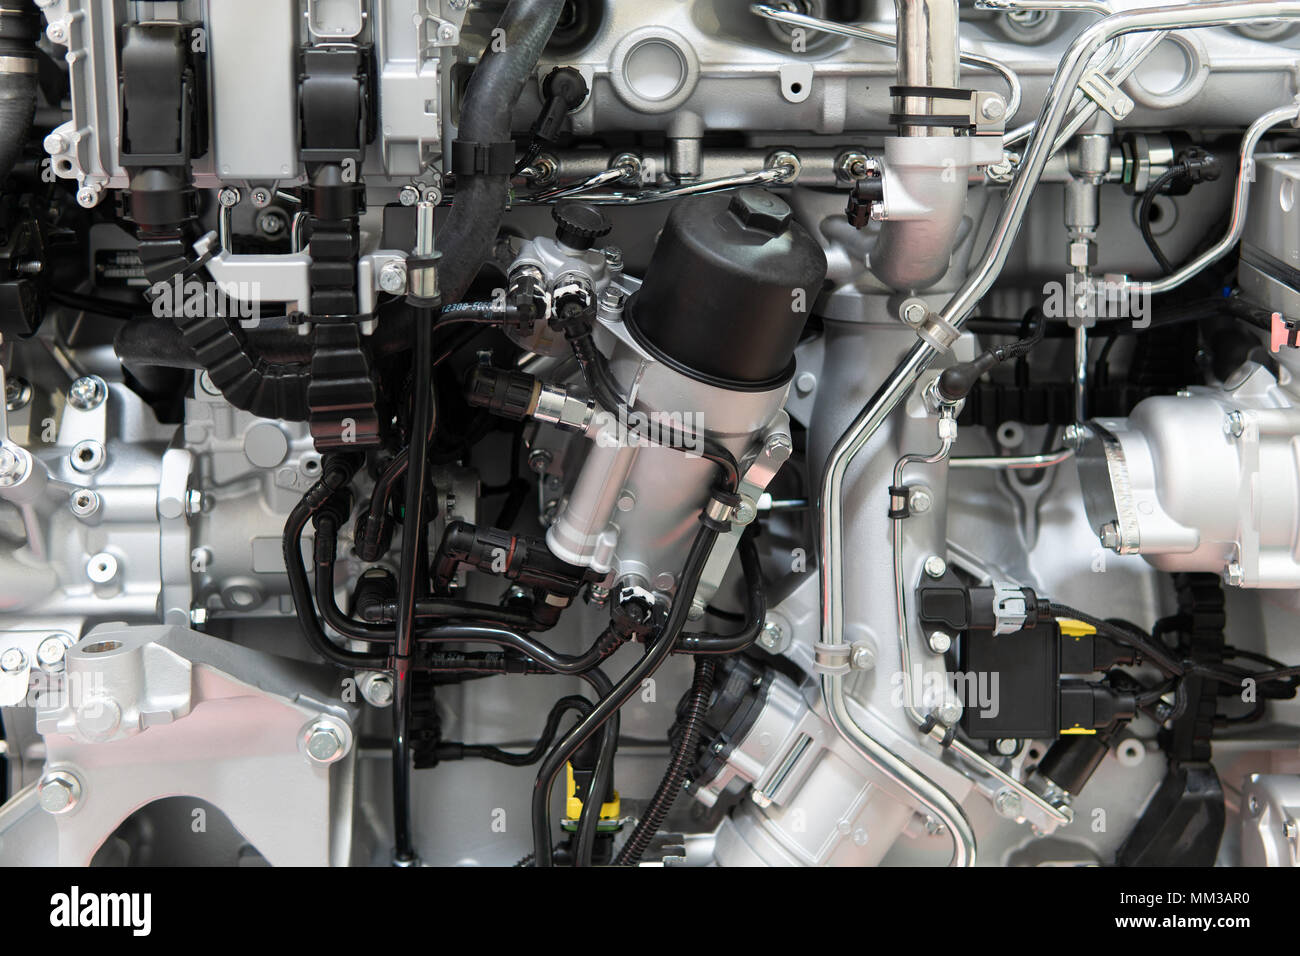 Truck Engine Motor Components In Car Service Inspection Stock Photo ...